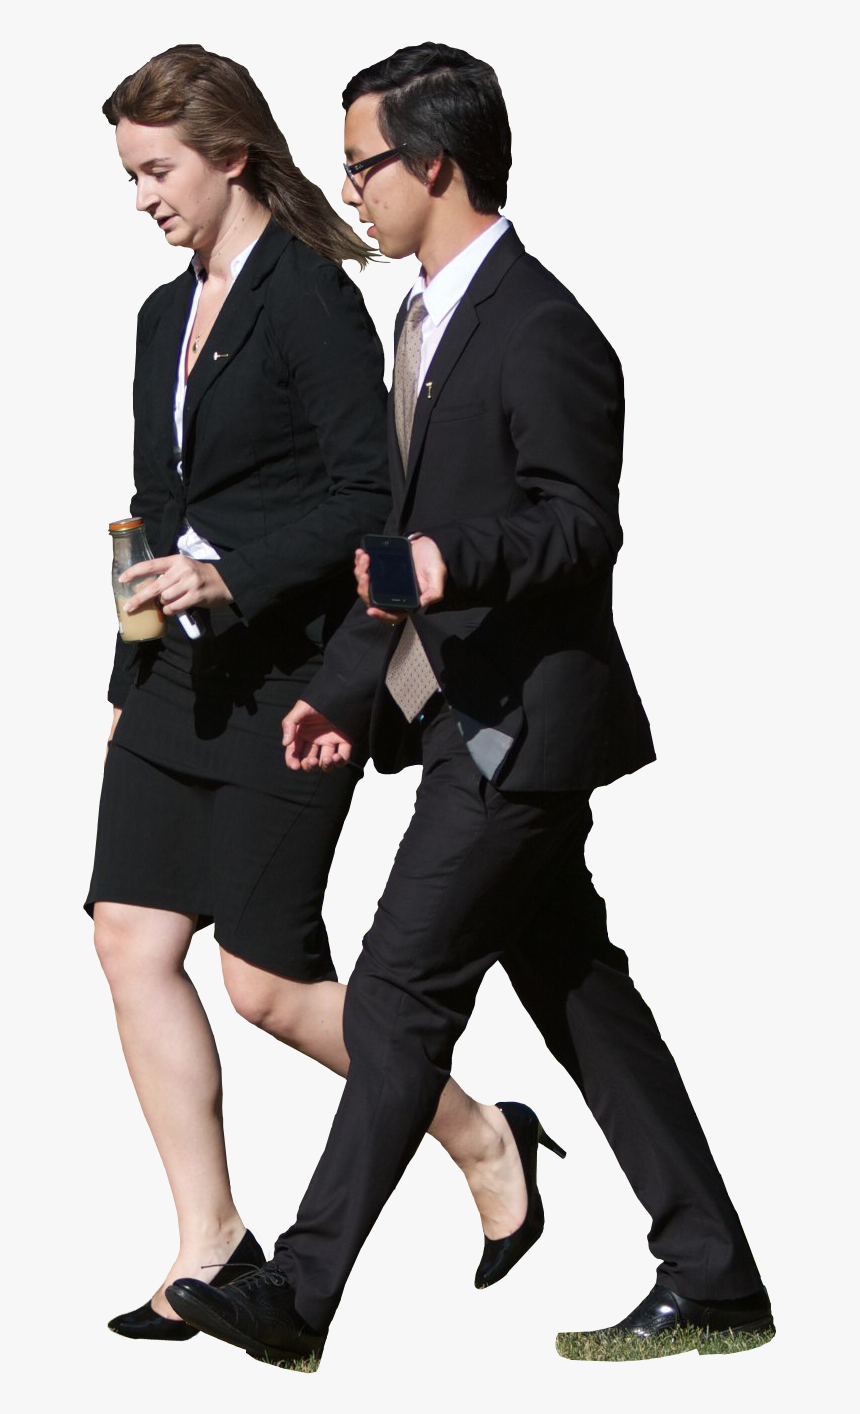 Business People Walking Png, Transparent Png, Free Download